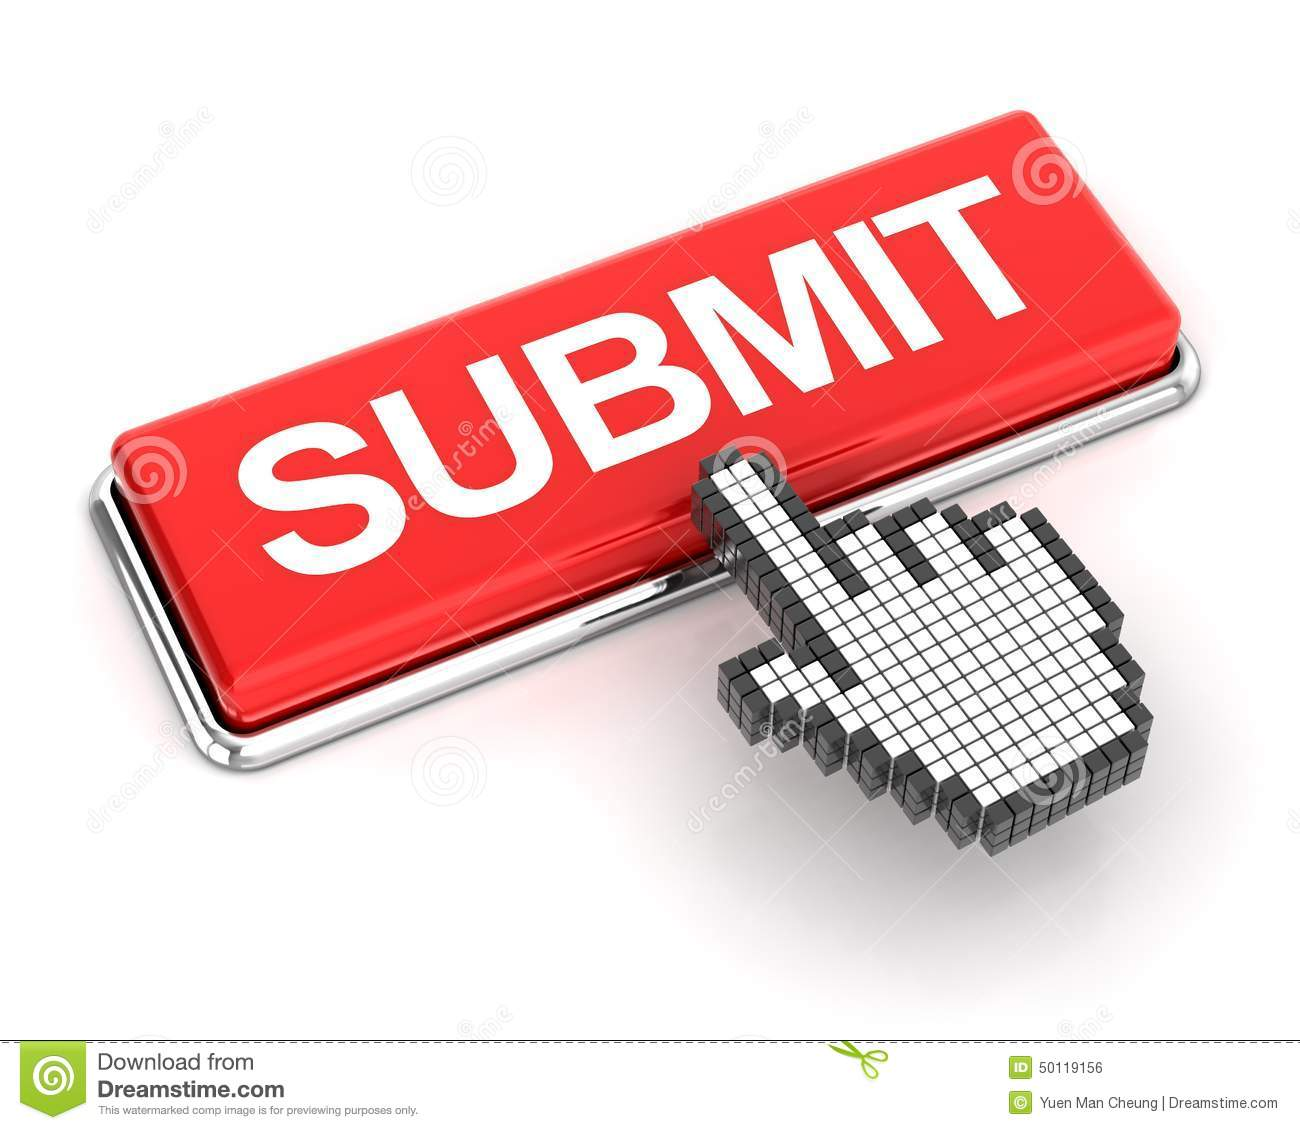 Submit button clipart.